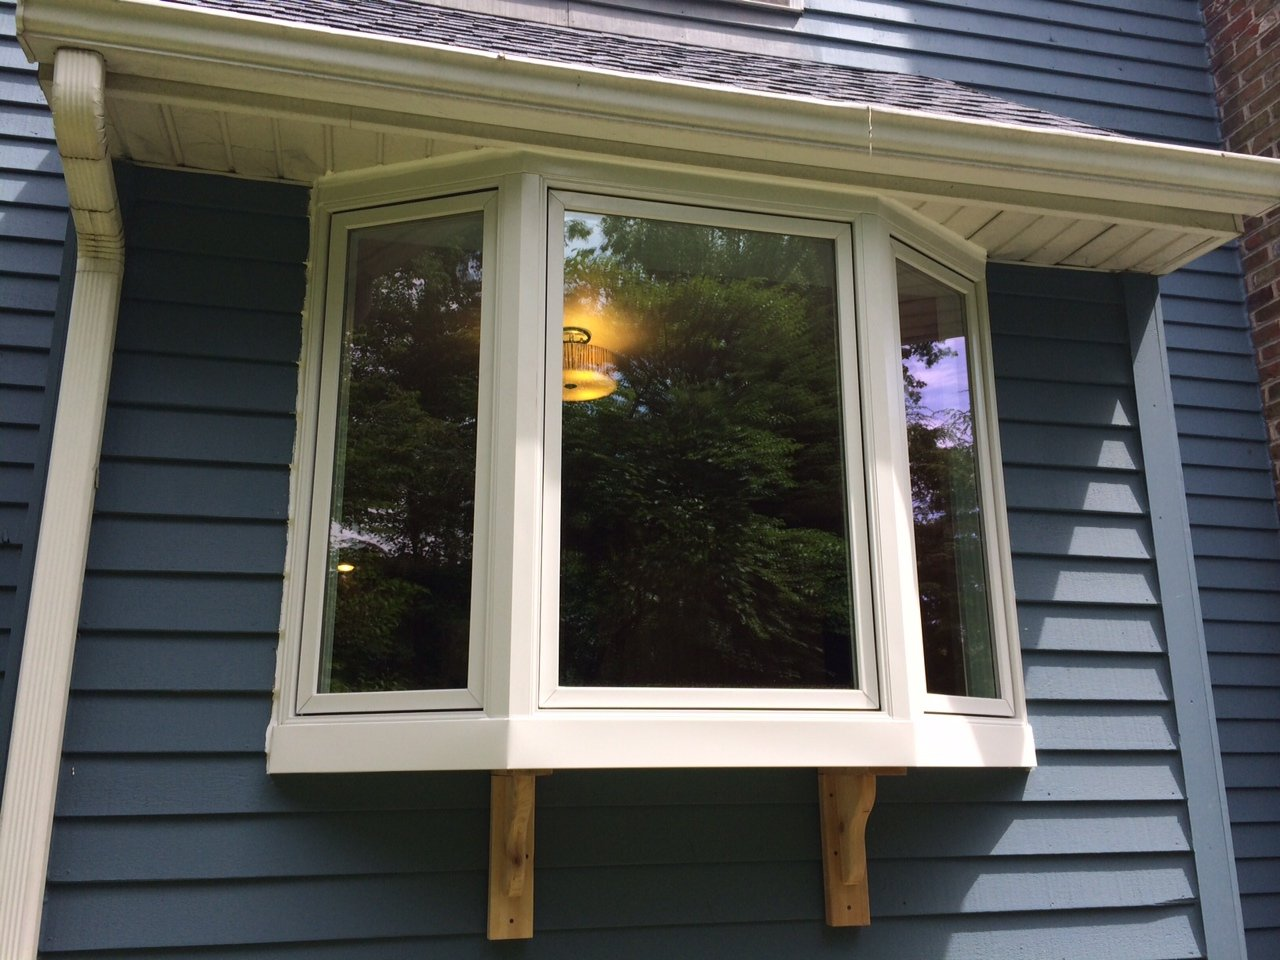 Best value replacement windows -  5d4e34 Replacement Windows Replacement Window House Window Replacement Cost Best Wood Replacement Windows Reviews 6379